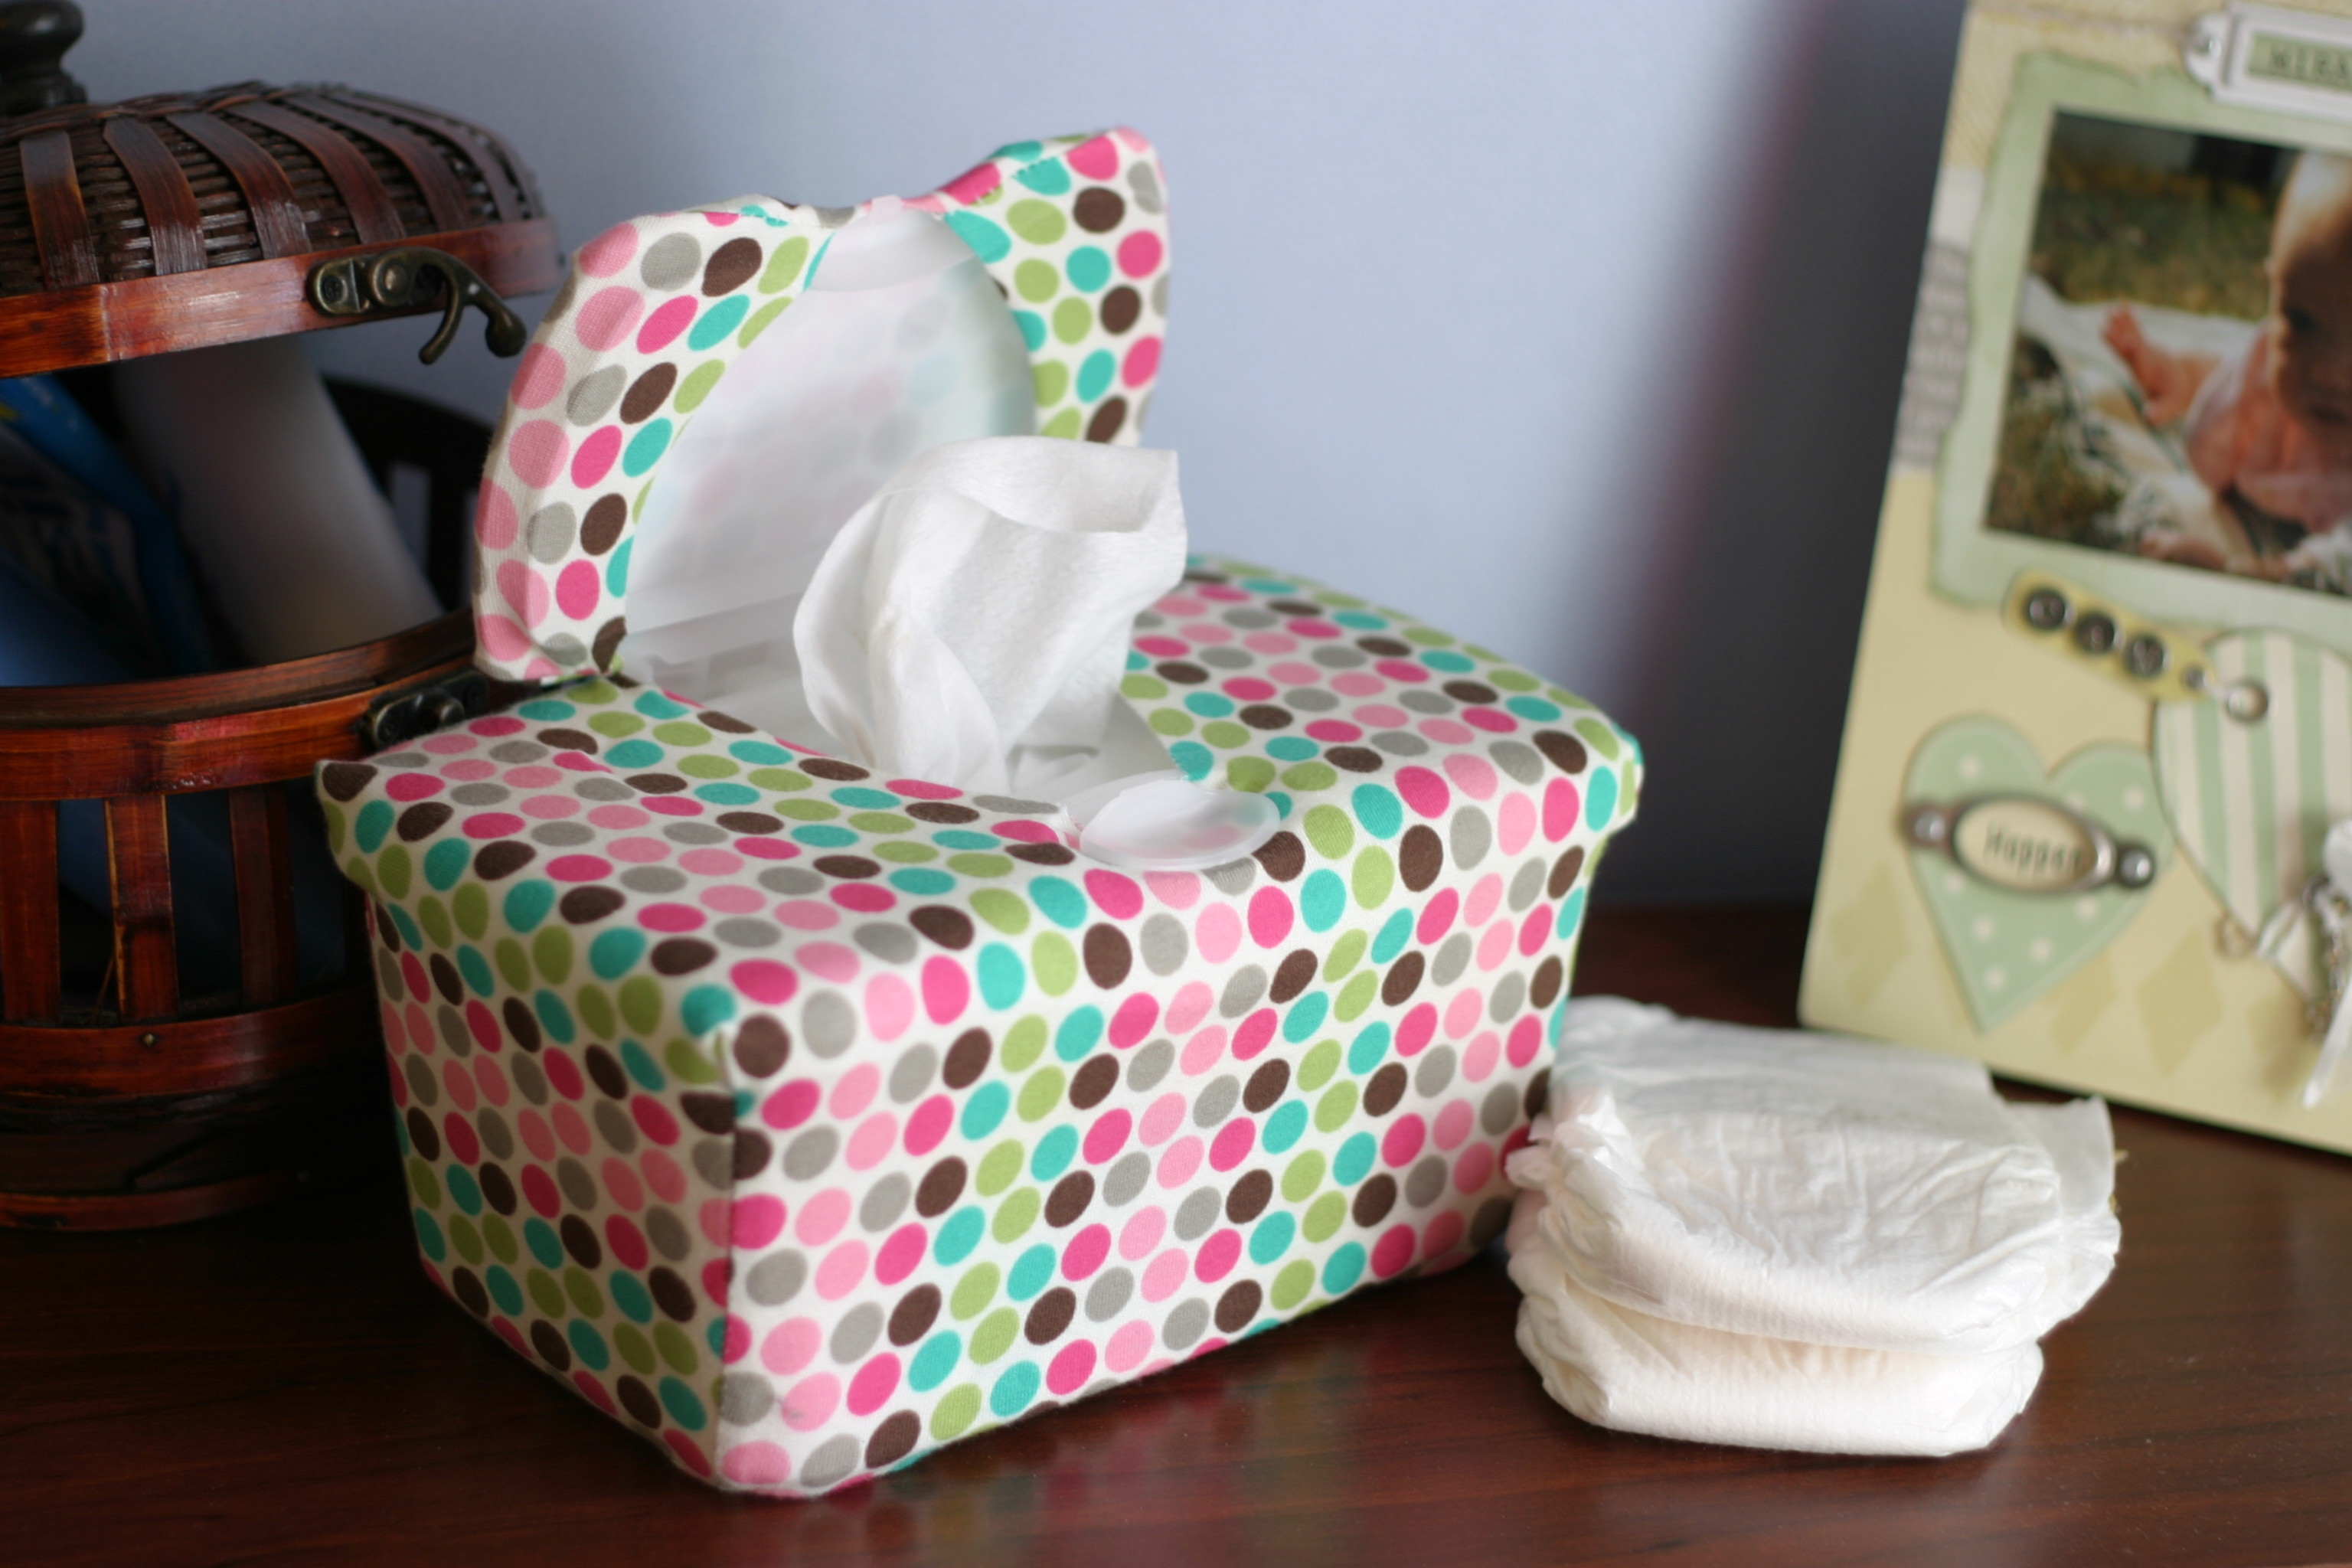 WipesWraps: Something cute on the changing table besides your baby's tush.